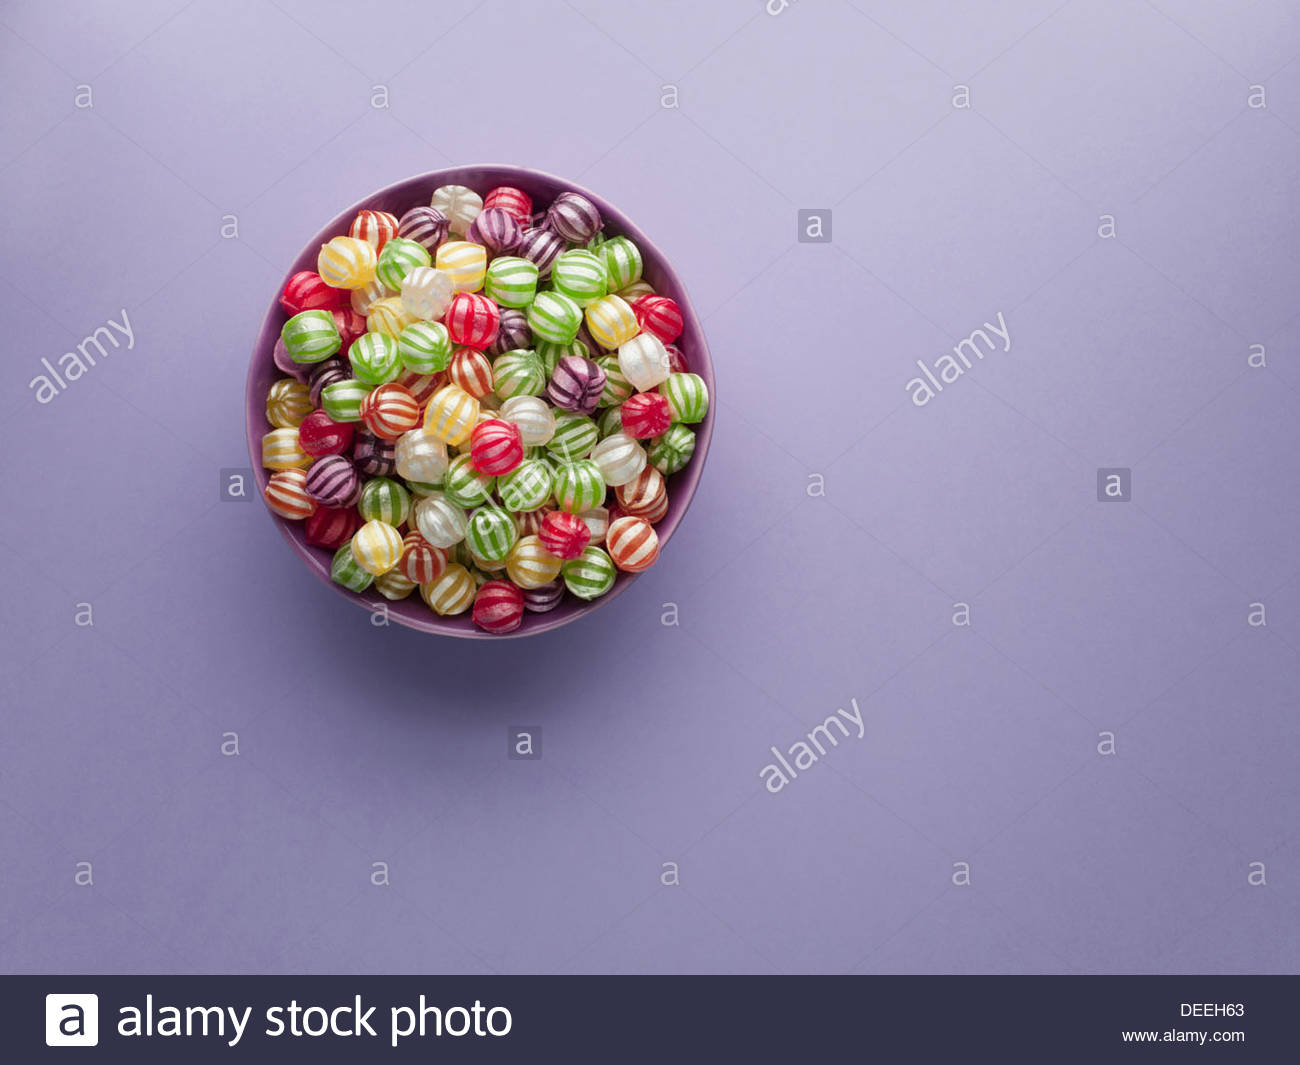 Vibrant hard candy in bowl - Stock Image